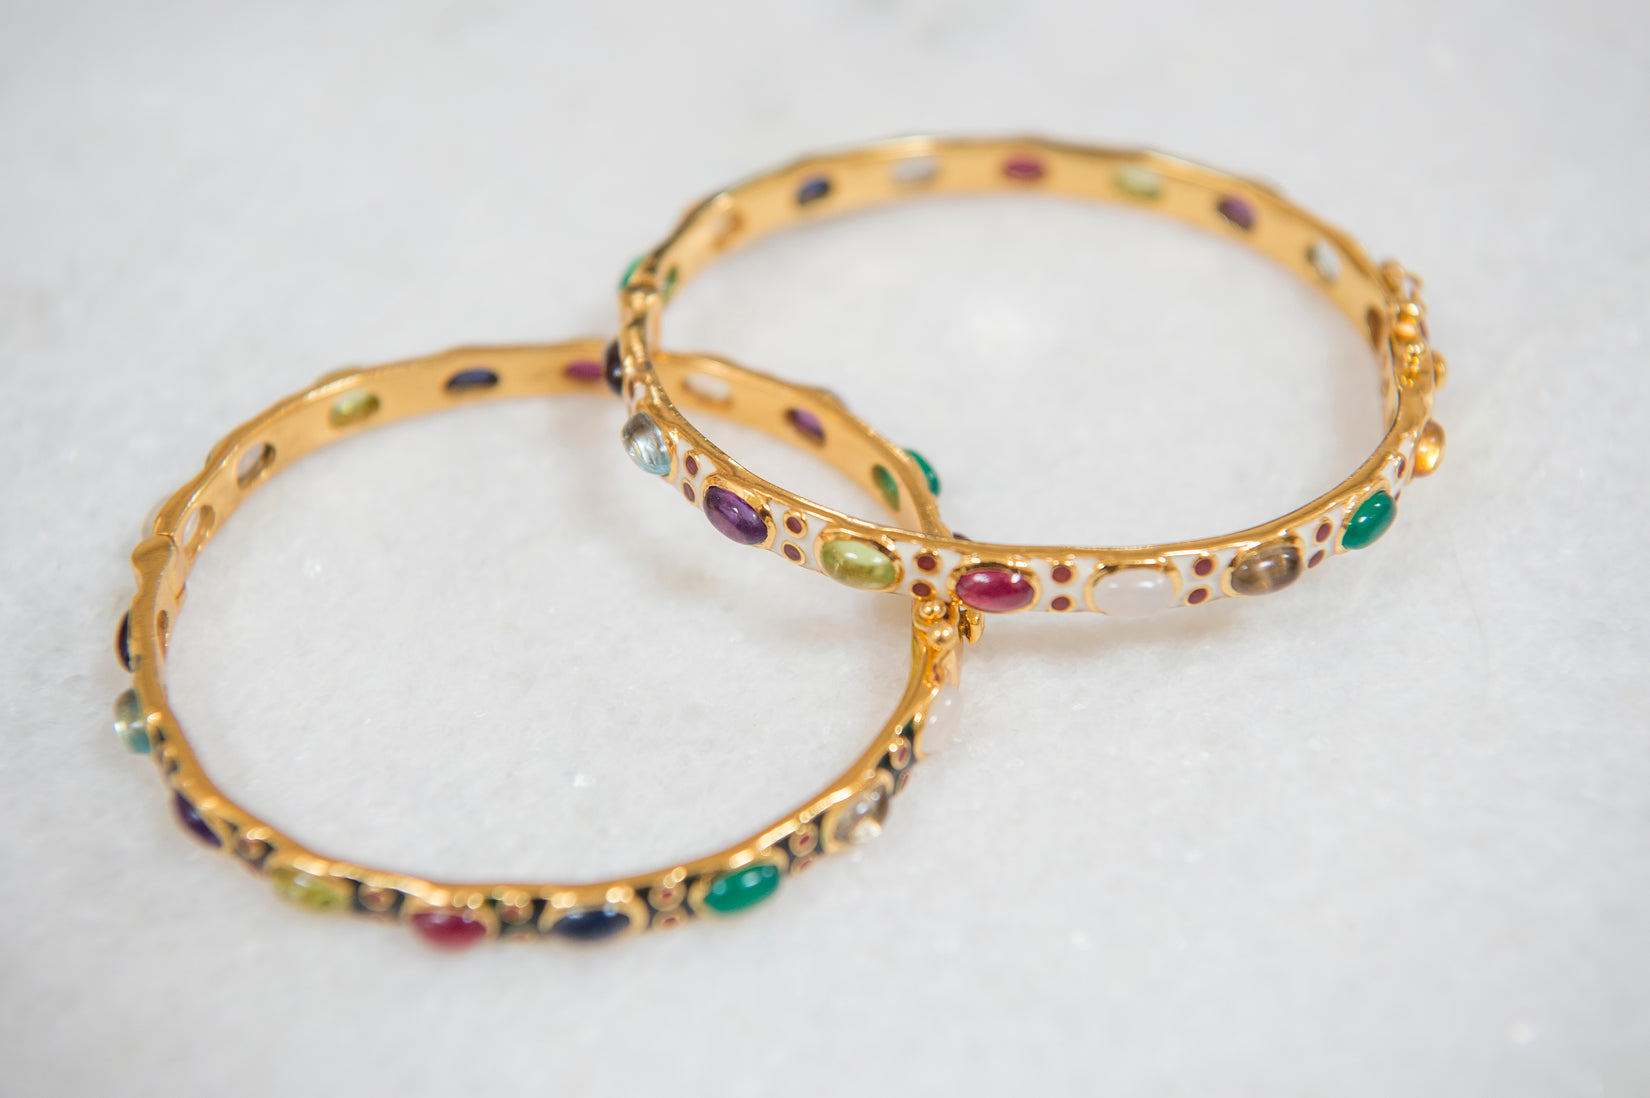 Enamel and gemstones bracelet